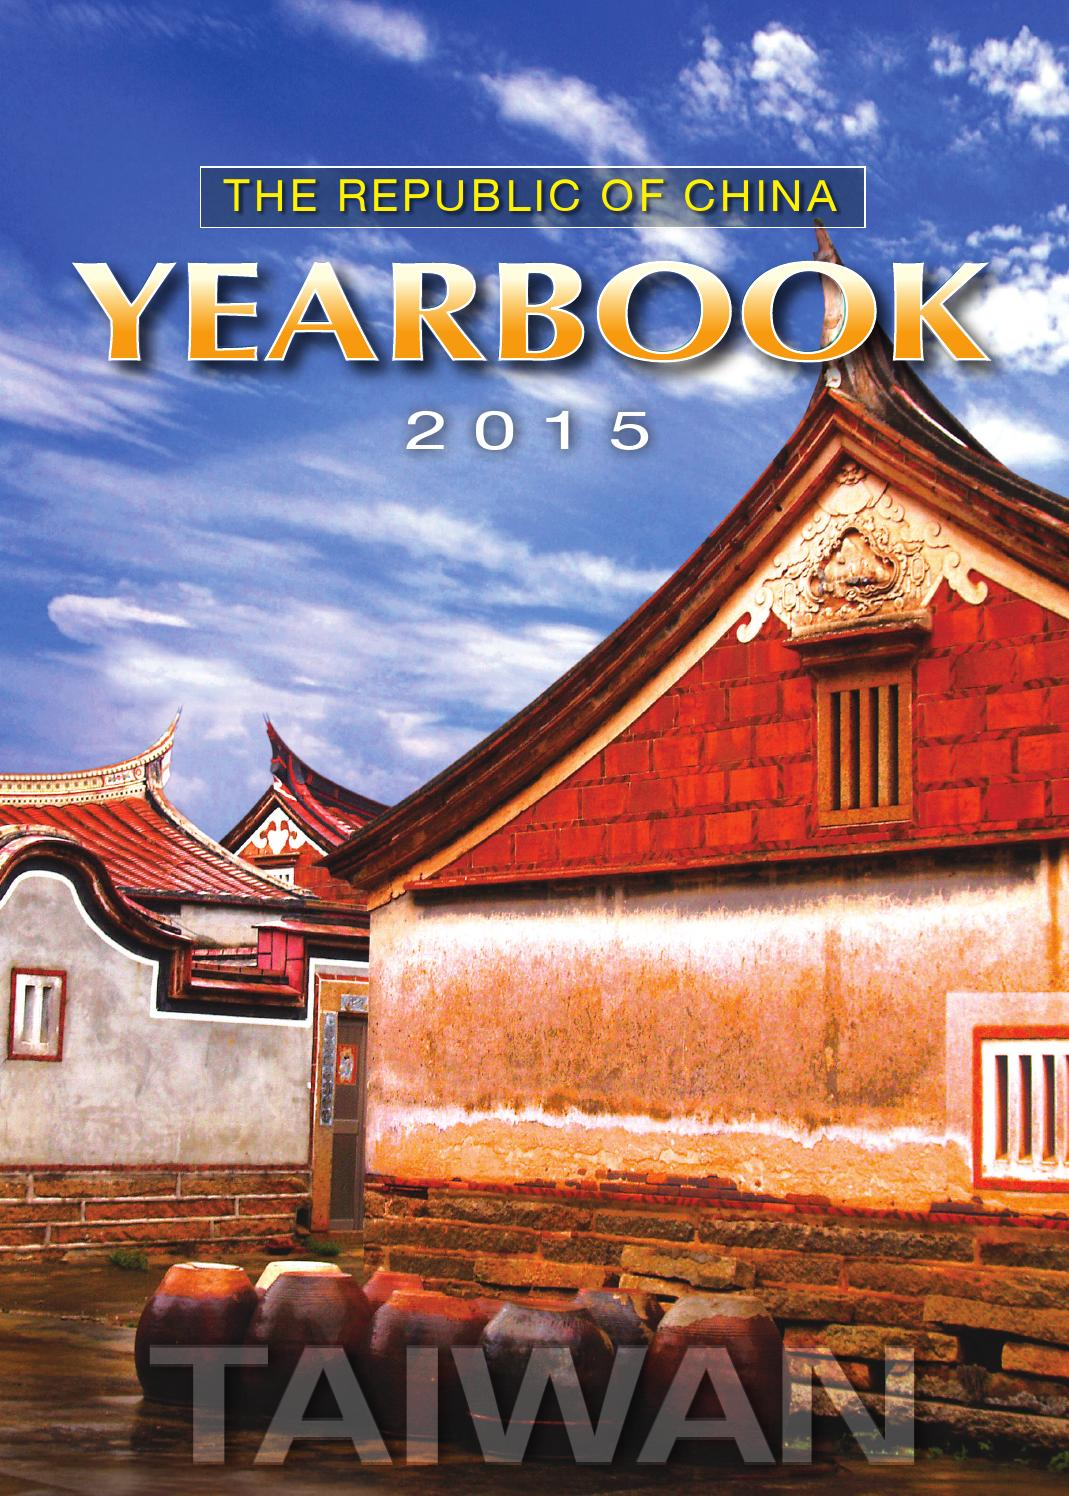 The Republic Of China Yearbook 2015 By Executive Yuan Issuu